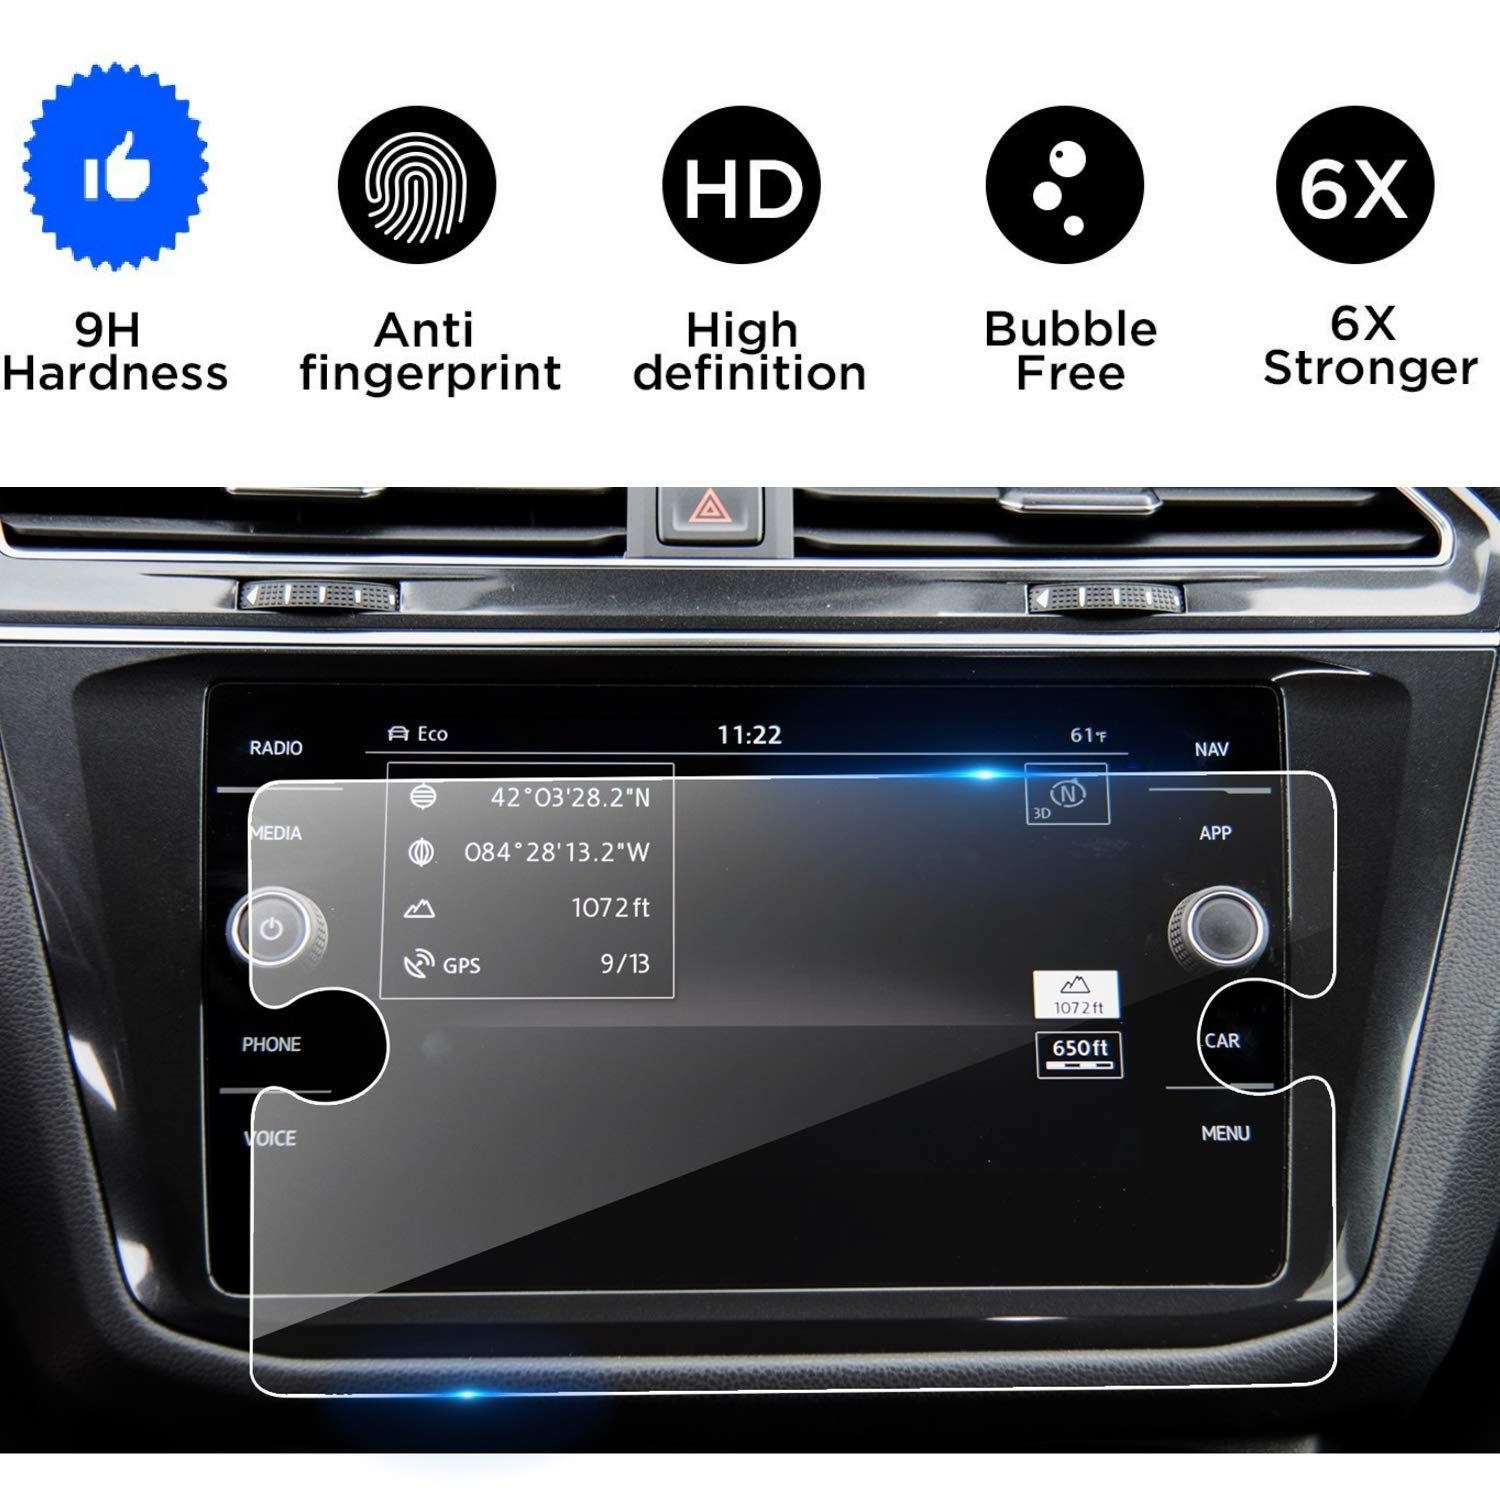 "Accessories Compatible with 2018 2019 Volkswagen Tiguan,Tempered Glass Screen Protector for Volkswagen Tiguan,Wonderfulhz,9H Hardness,Anti Fingerprint,High Definition,Volkswagen 8/"" Car Center Touch Sc"